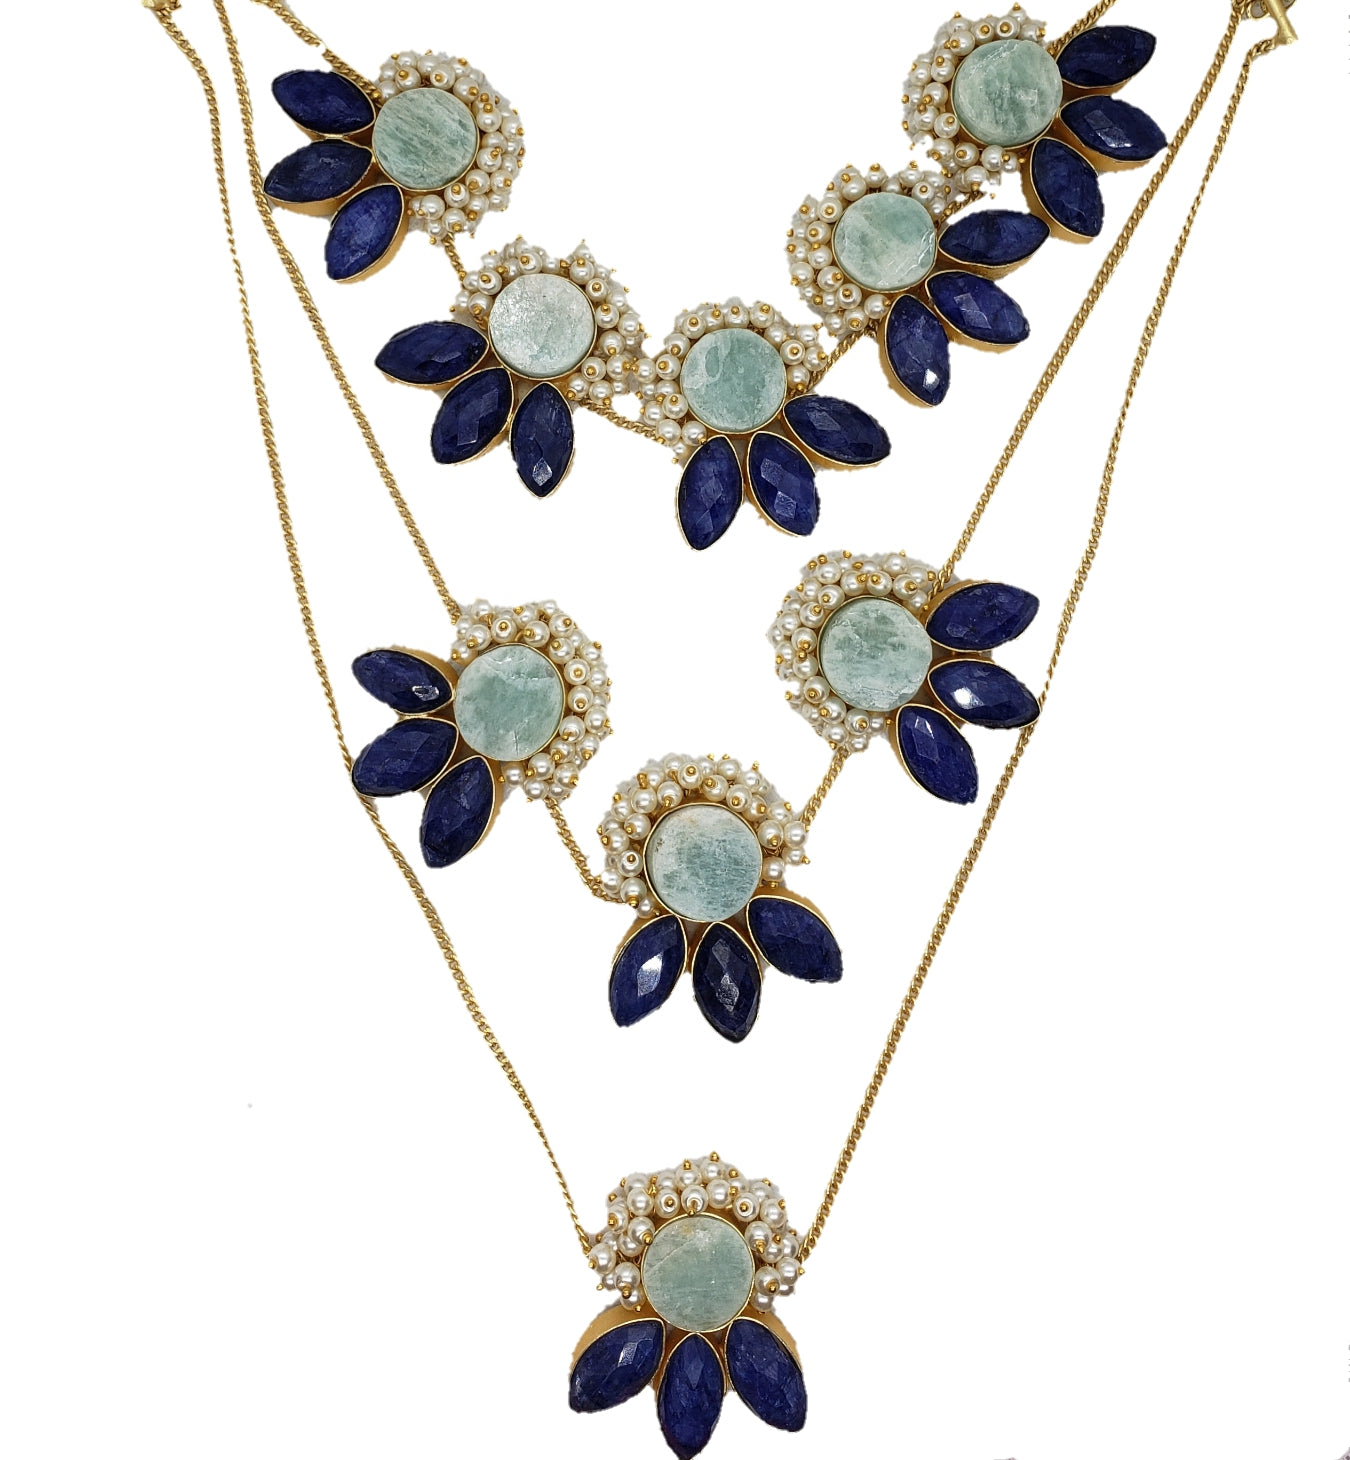 Lapis and Amazonite Layered Necklace - The Bauble Shop